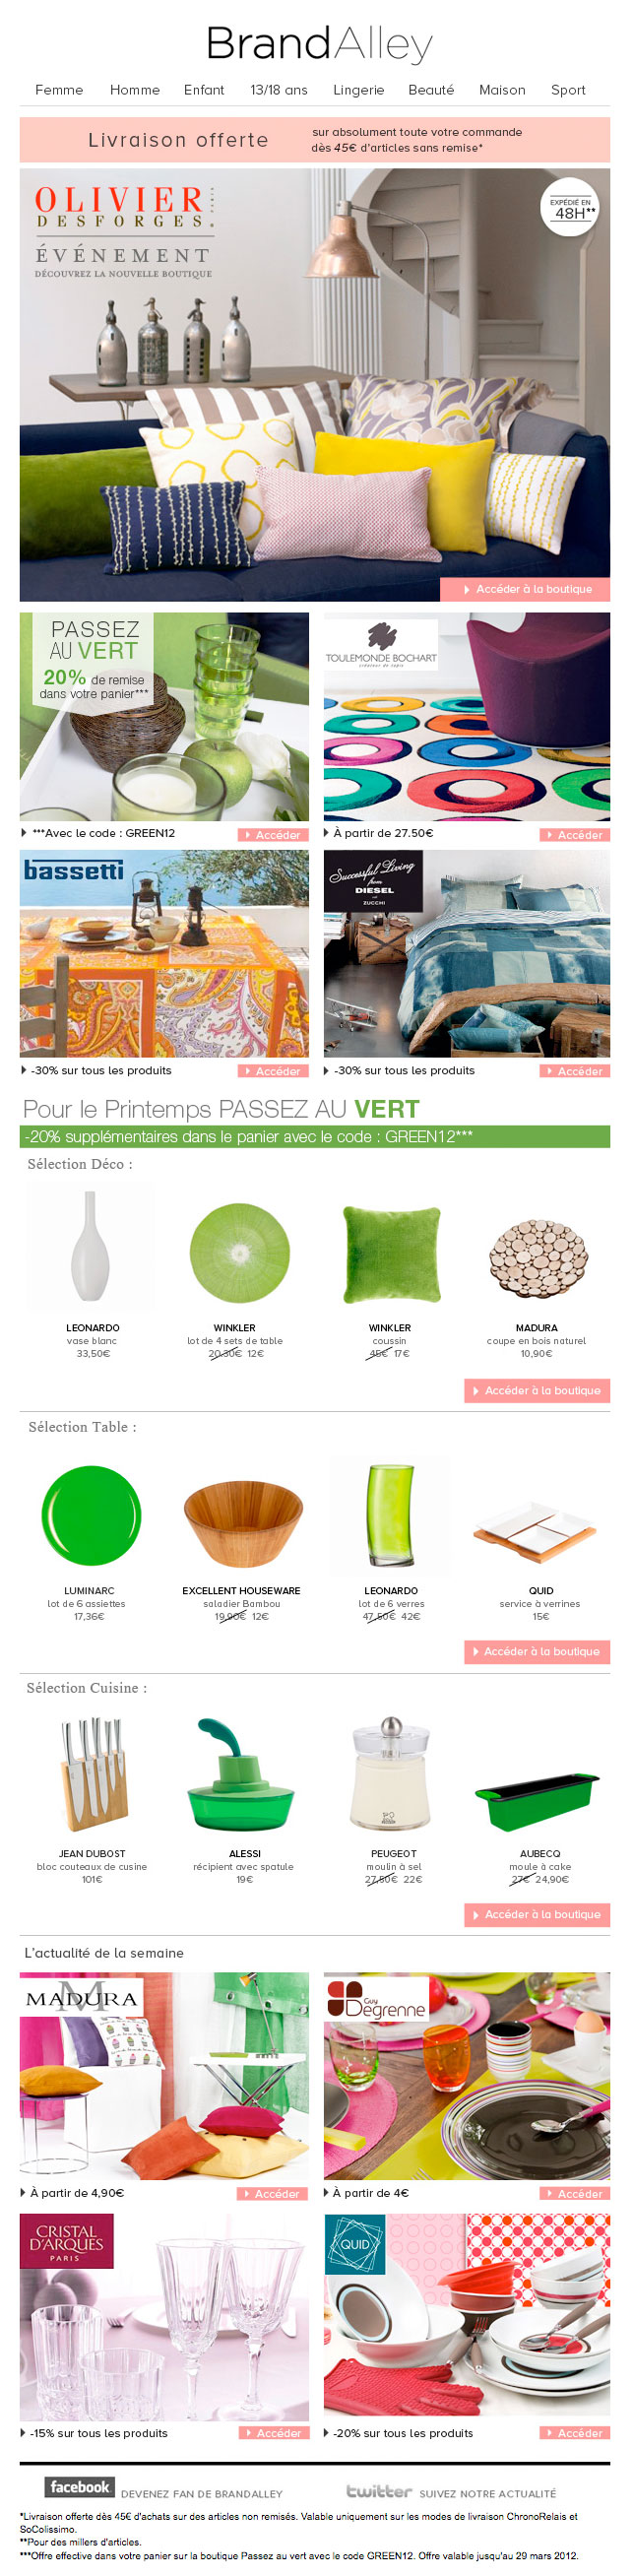 Newsletter Brandalley 240312